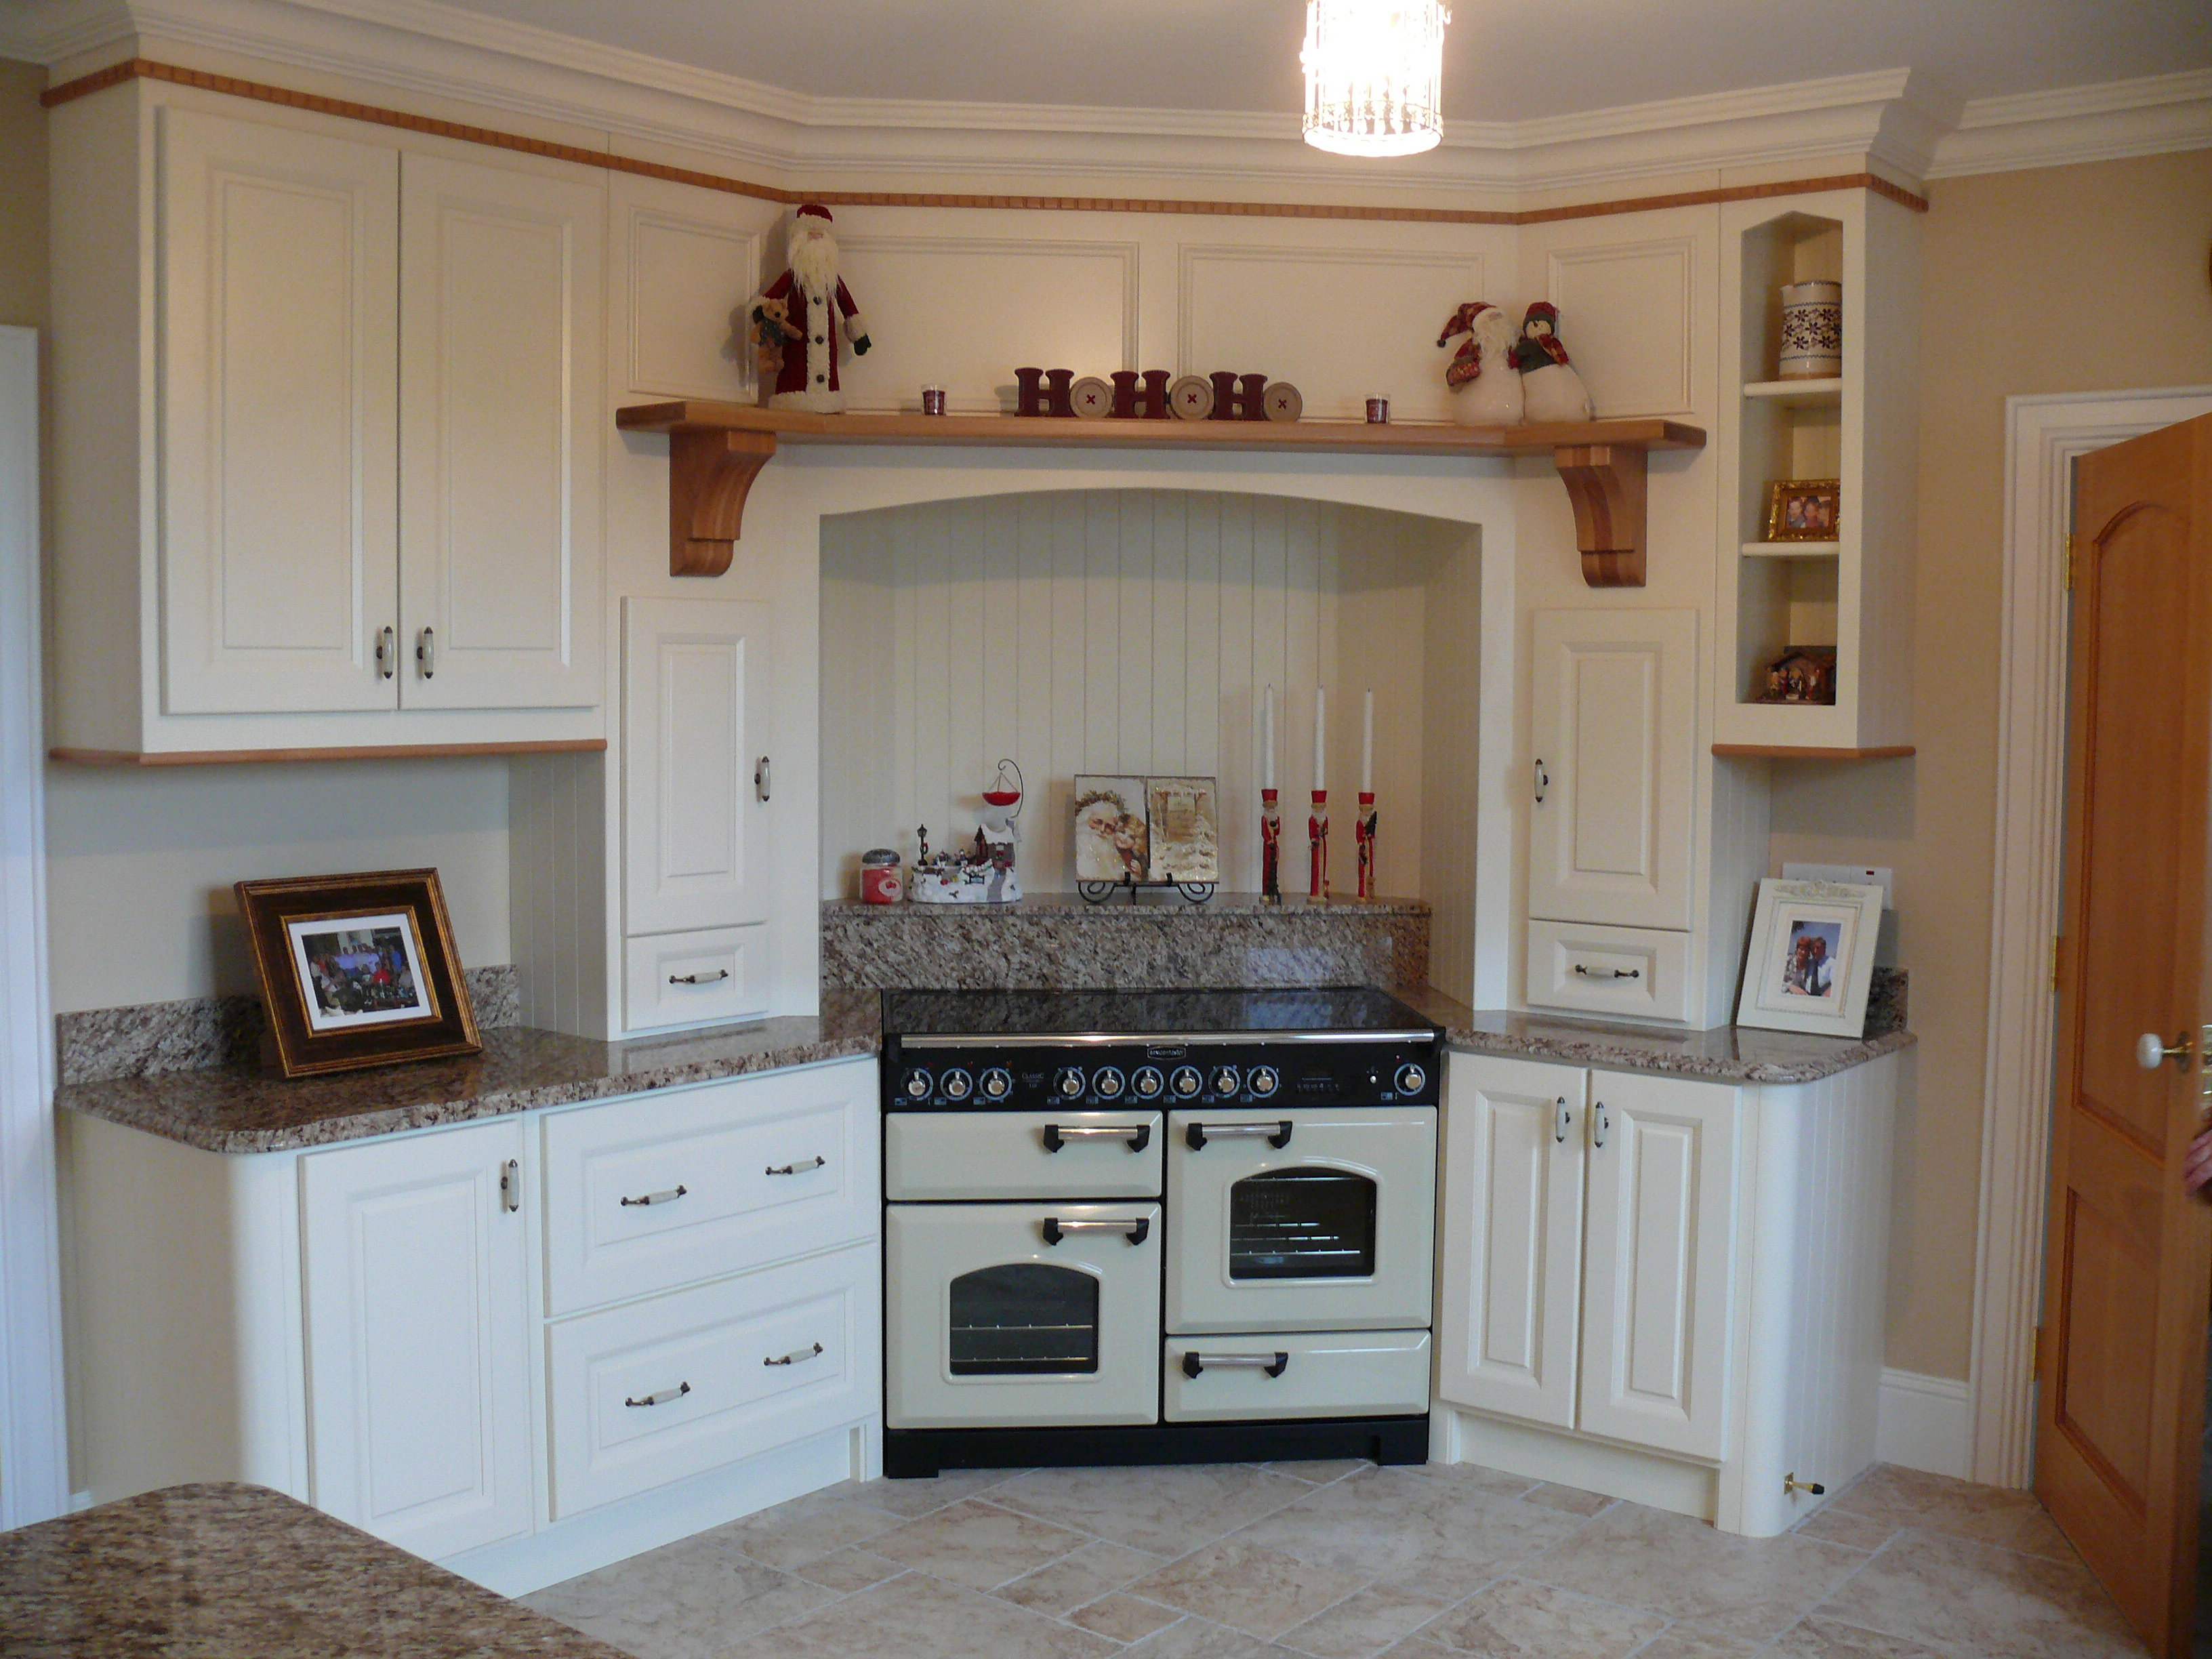 Molloy Kitchens Galway, Bespoke Furniture Kitchens, Galway